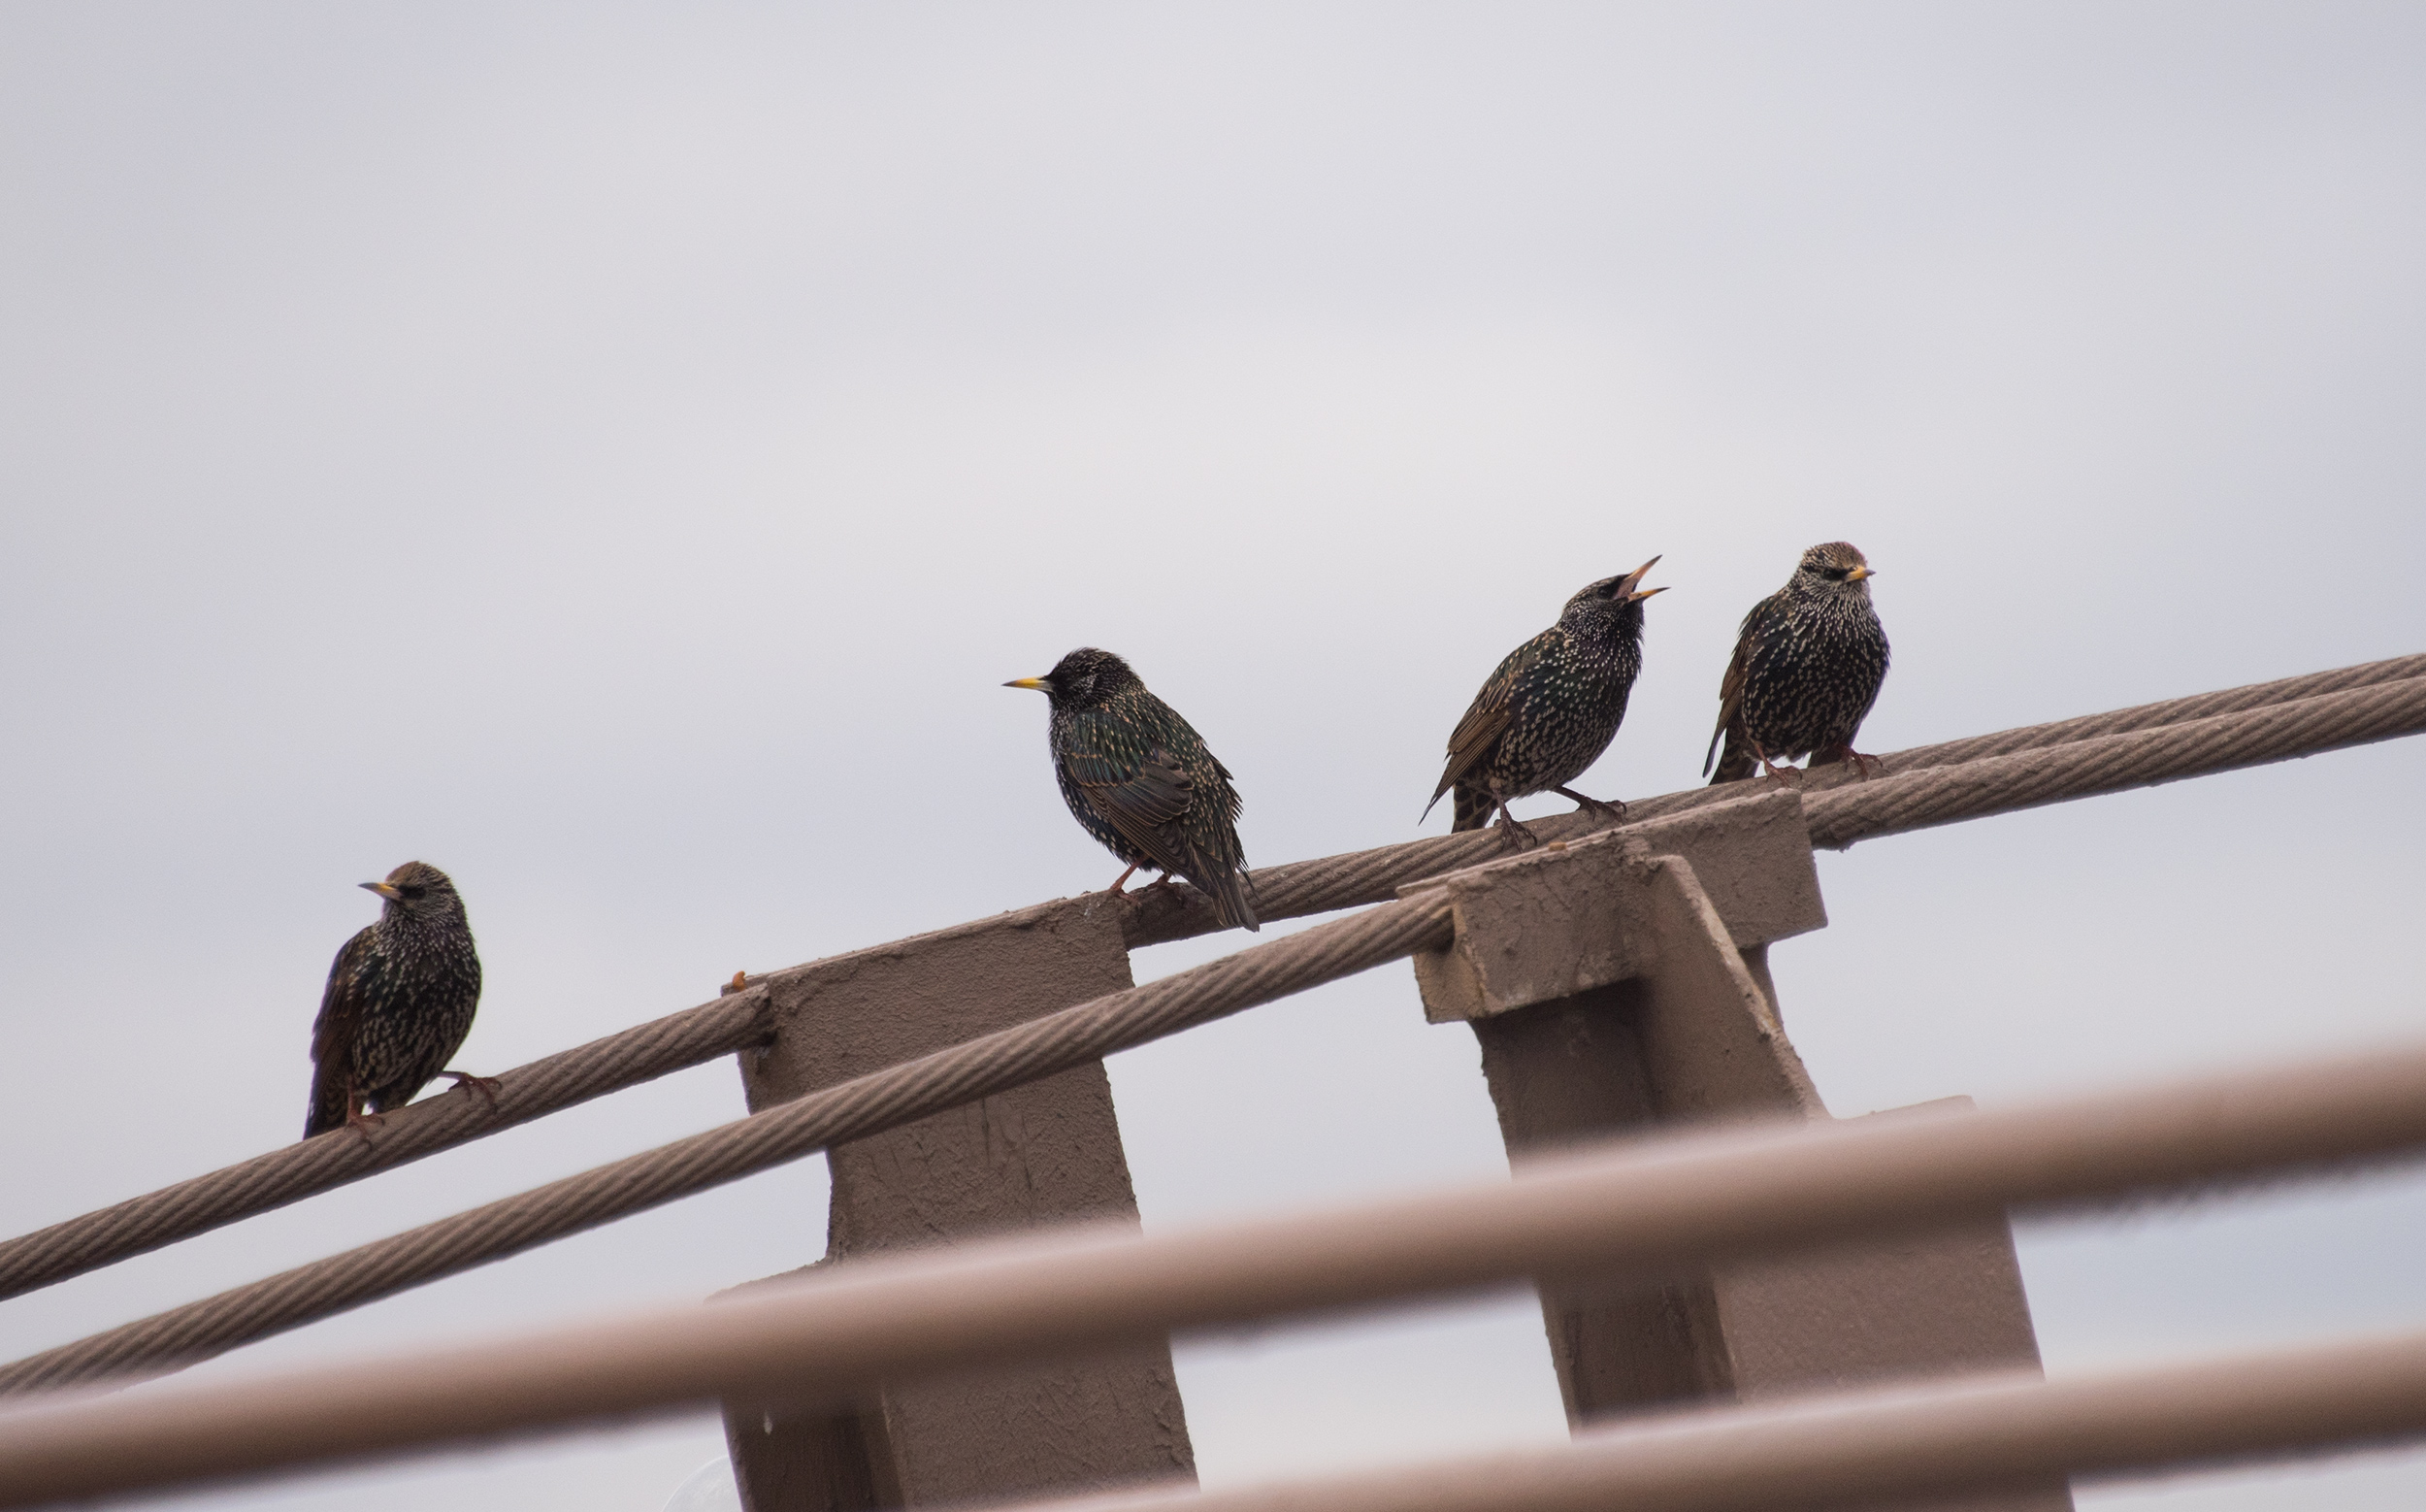 European Starling, ホシムクドリ, Brooklyn, NY, United States